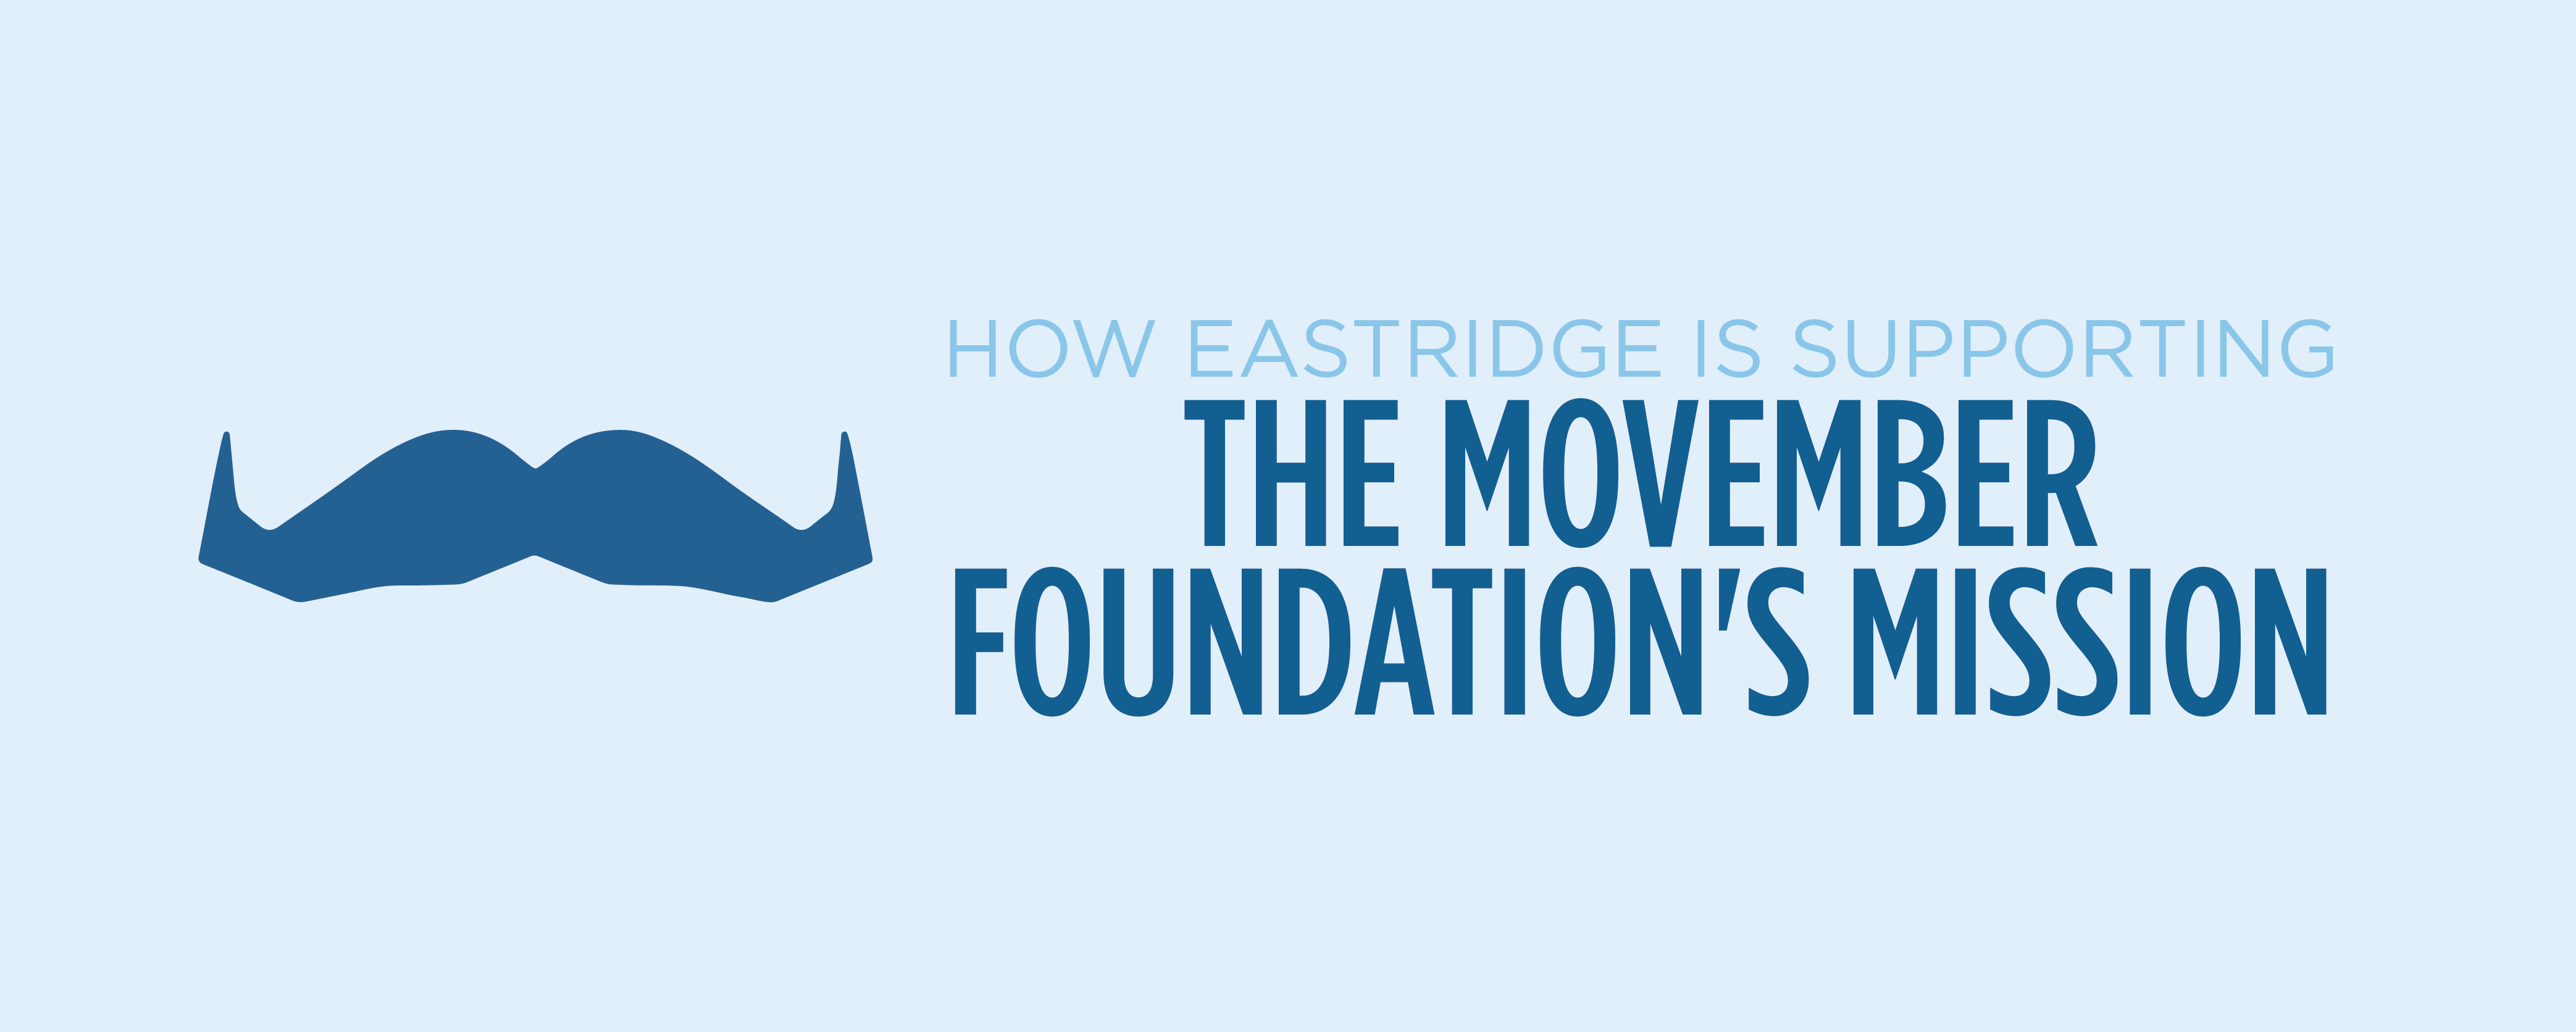 how eastridge is supporting the movember foundation